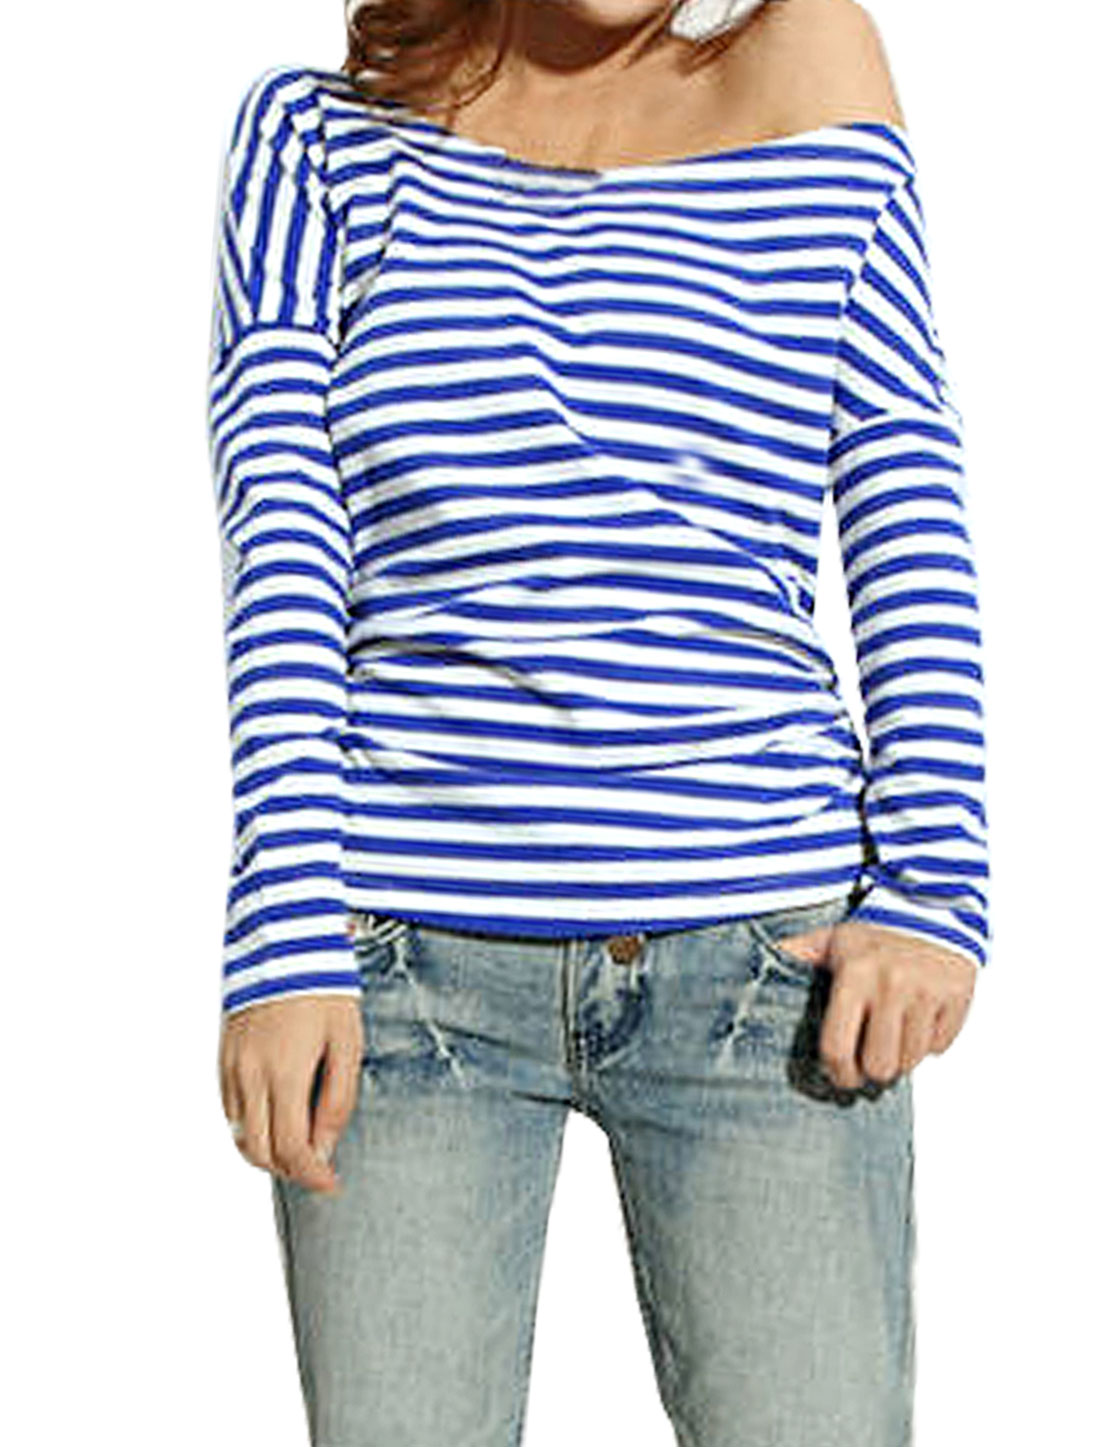 Women Boat Neck Blue White Horizontal Striped Shirt XS